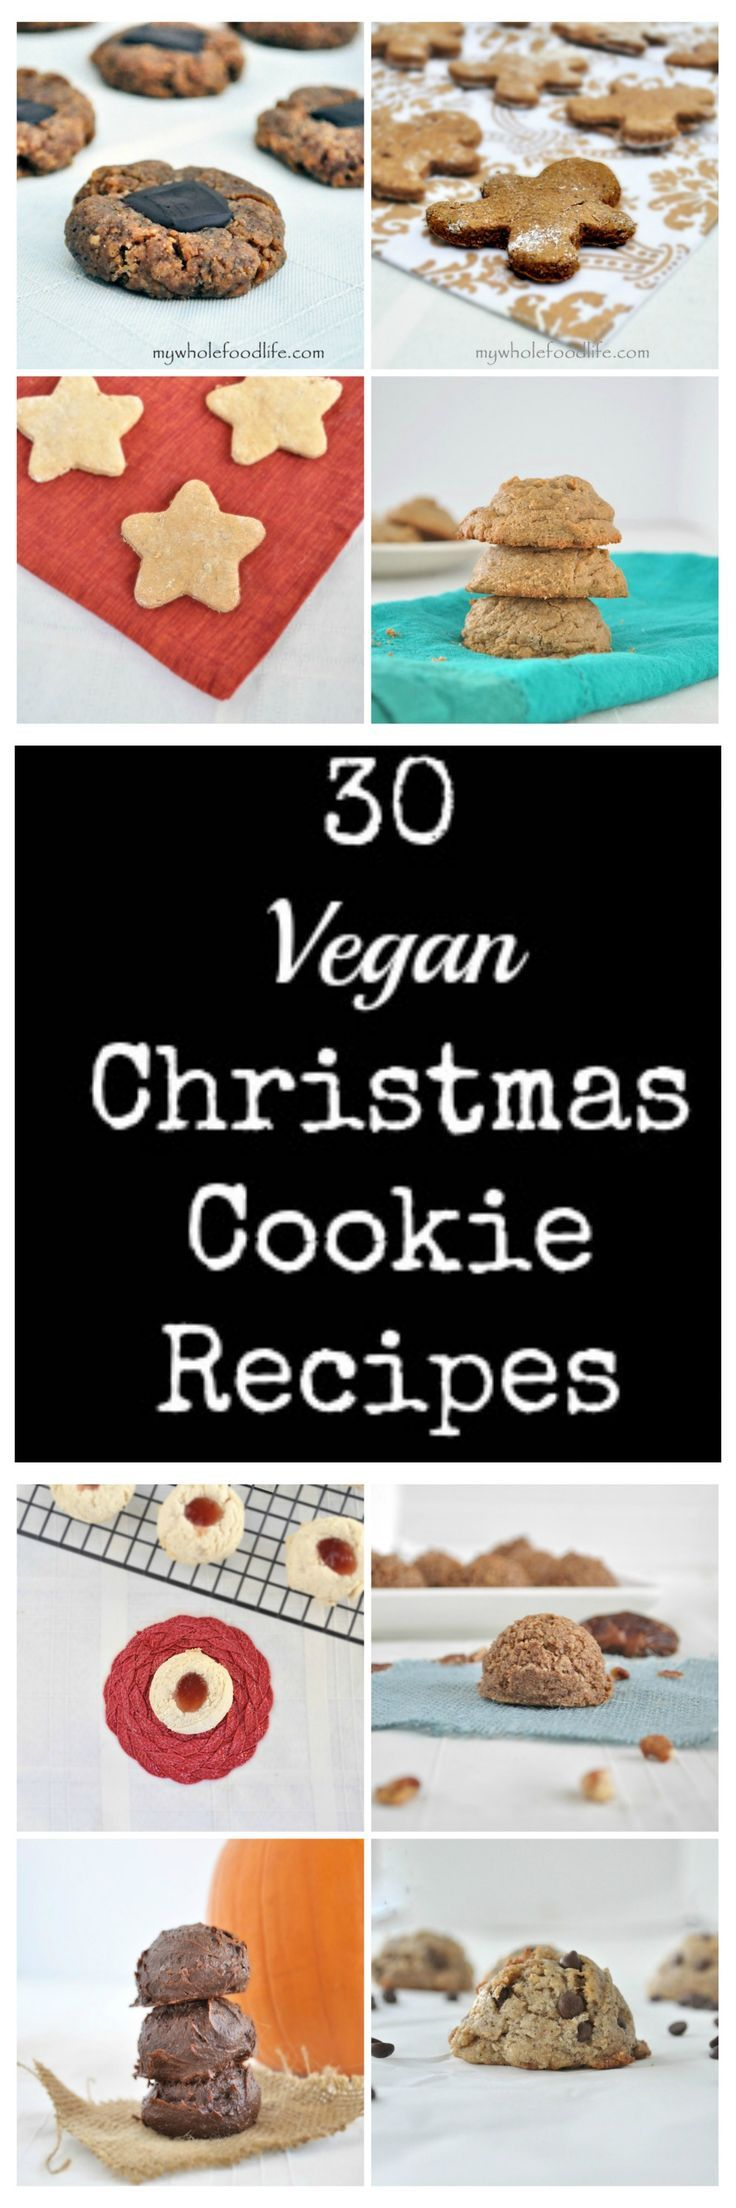 30 Vegan Holiday Cookies to celebrate with! You will not miss the butter and eggs in these delicious recipes!